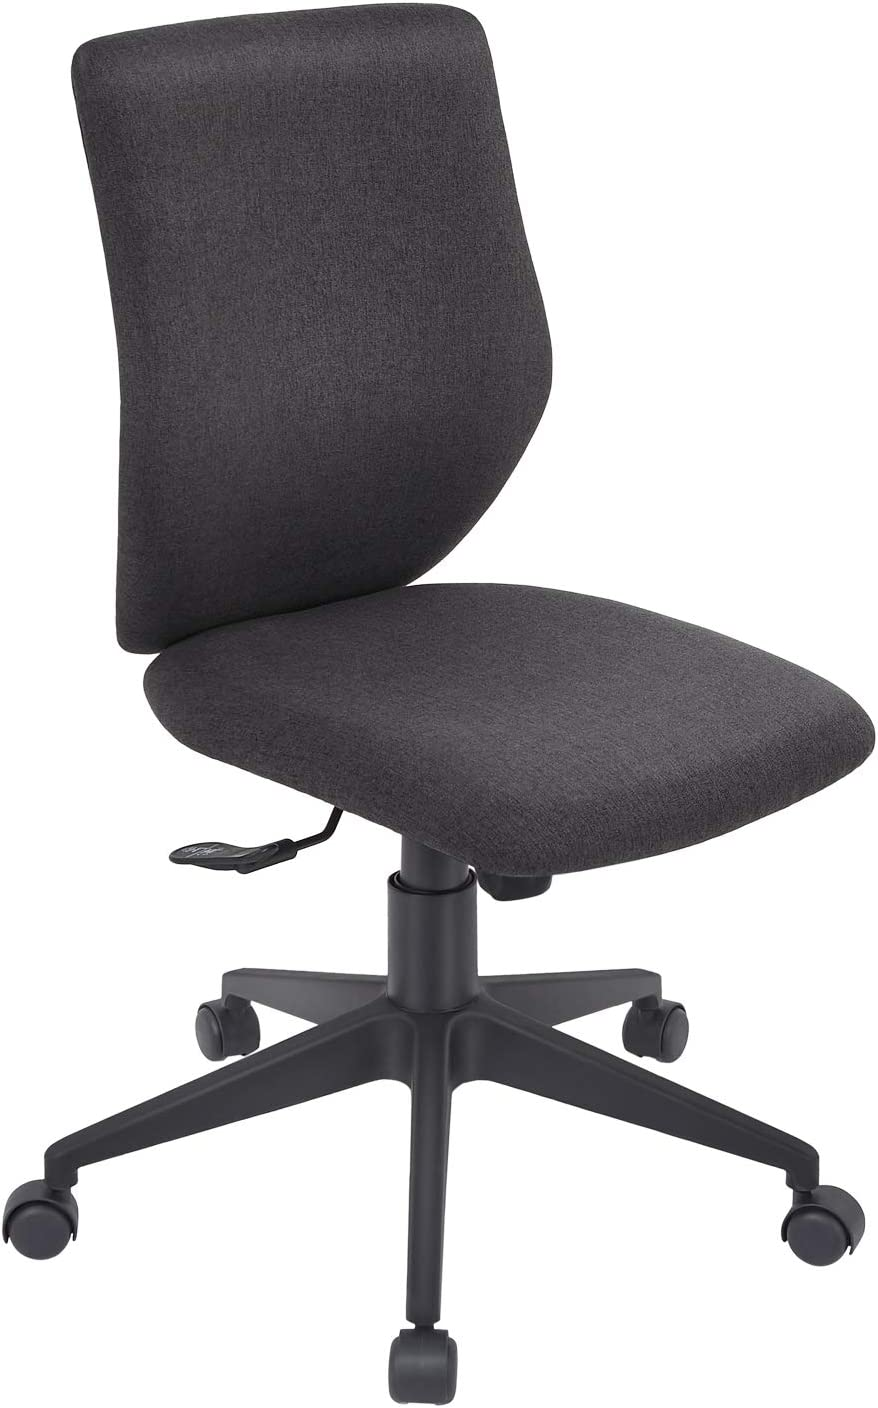 Bowthy Armless Office Chair Ergonomic Computer Task Desk Chair Without Arms Mid Back Fabric Swivel Chair (Black)